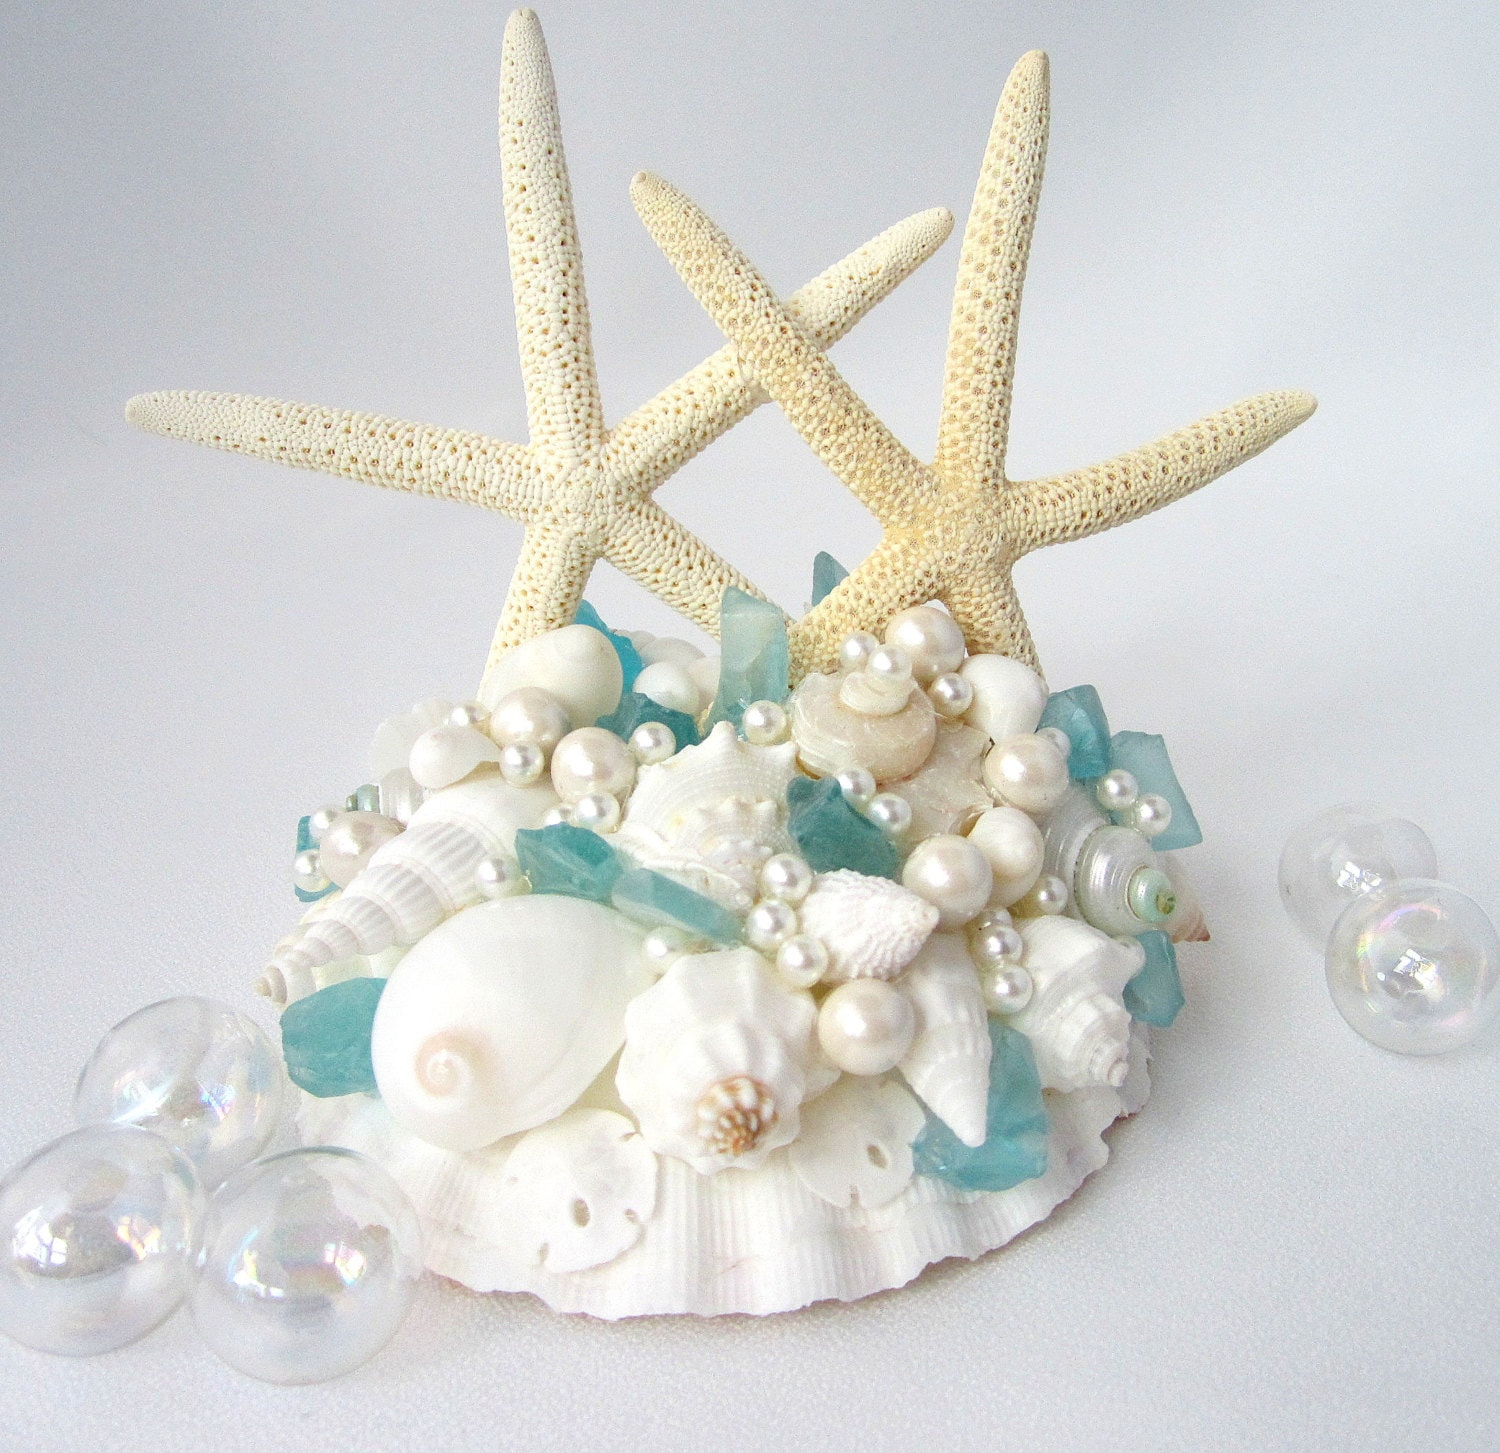 beach wedding cake topper nautical wedding cake topper. Black Bedroom Furniture Sets. Home Design Ideas